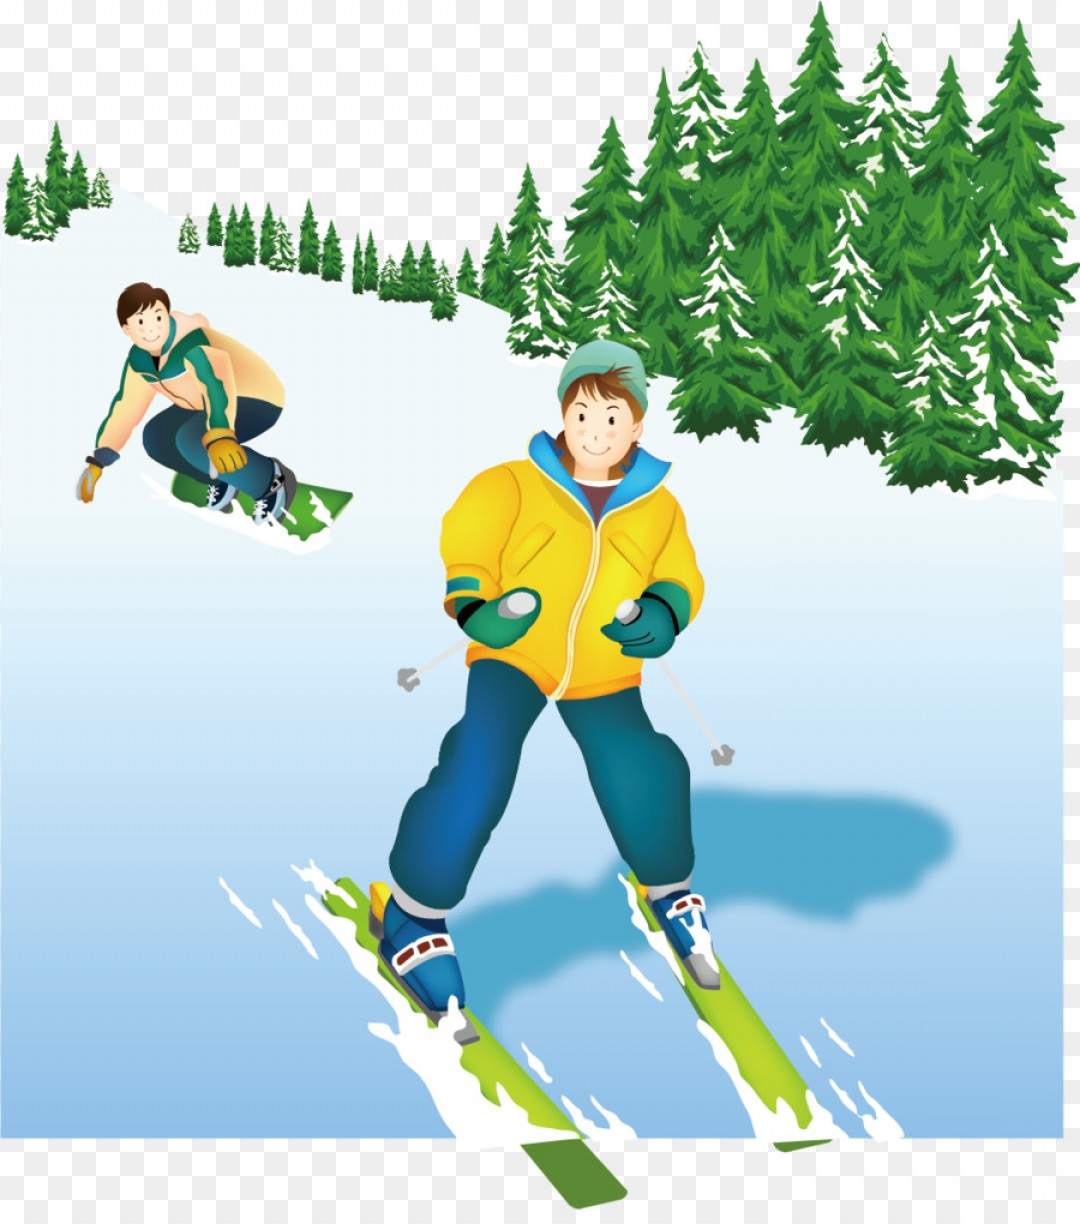 Transparent PNG Vector Skier: Png Adobe Illustrator Skiing Snow Ski Snow Vector Wint